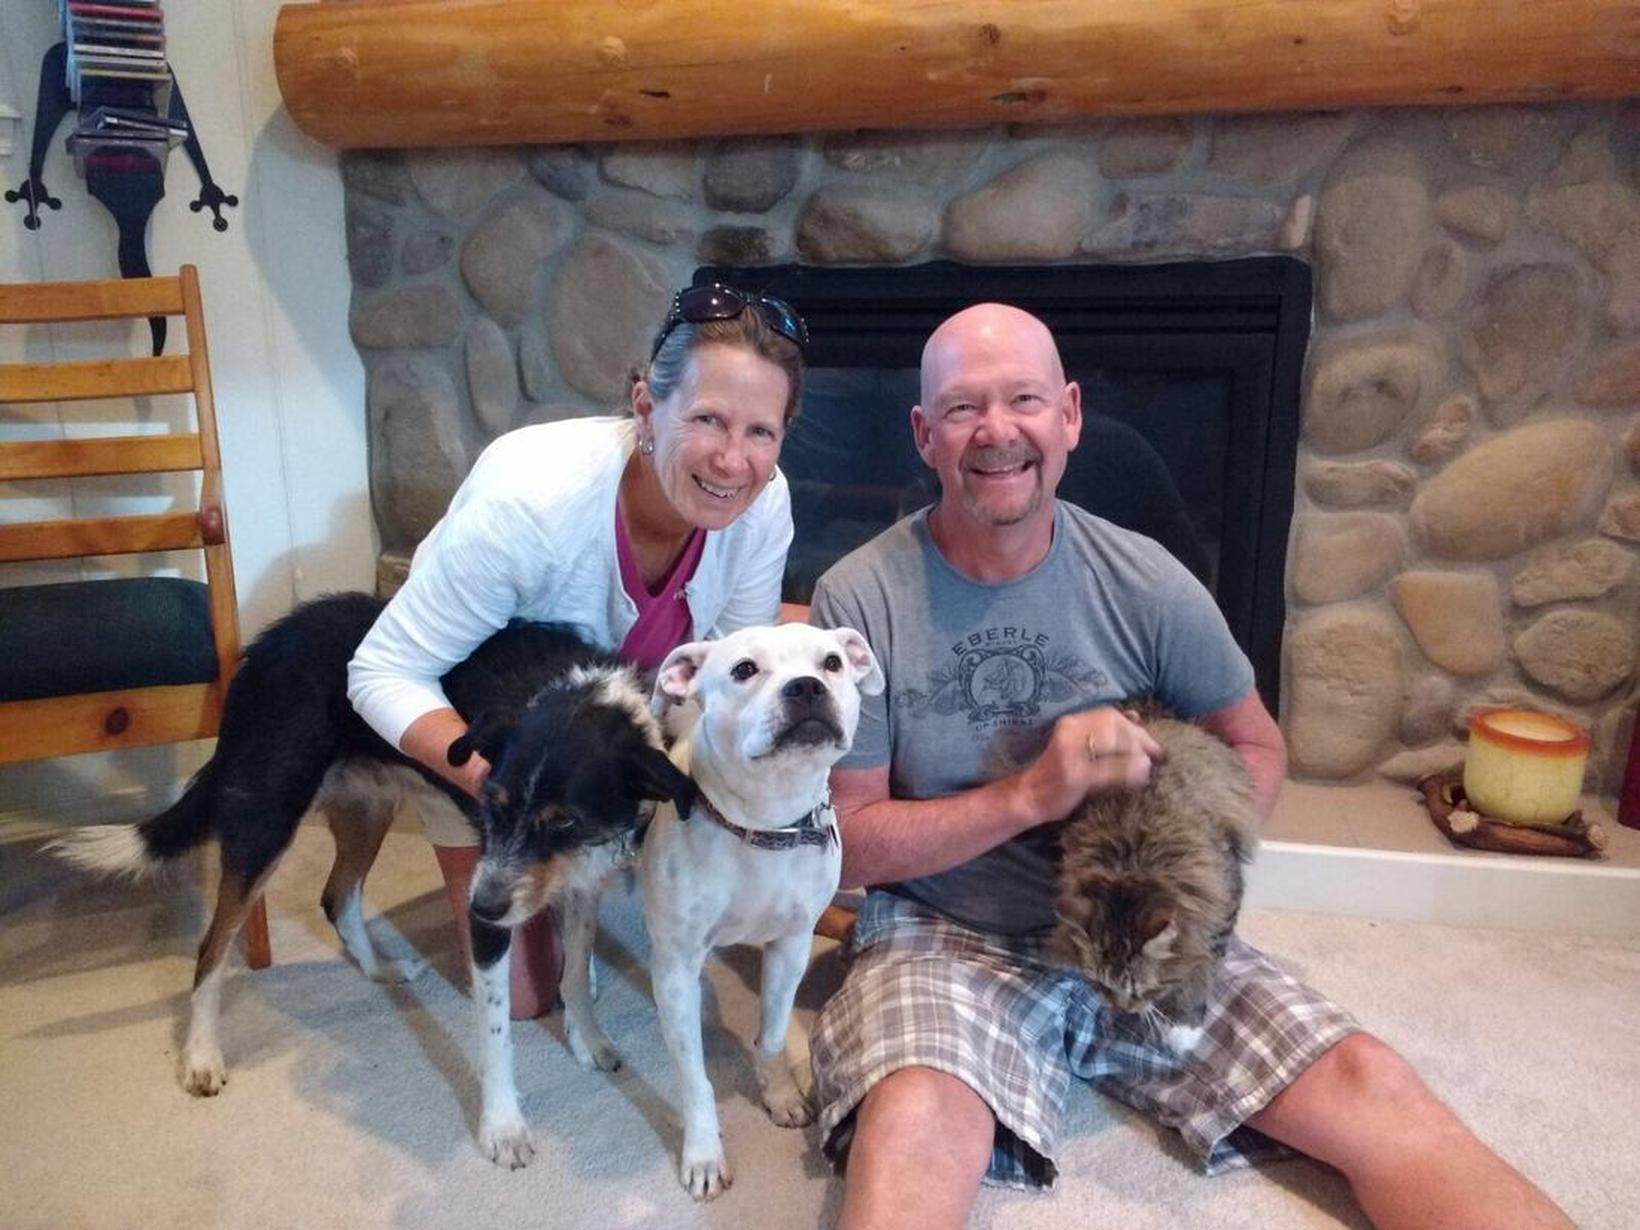 Mary pat & Dean from Escondido, California, United States